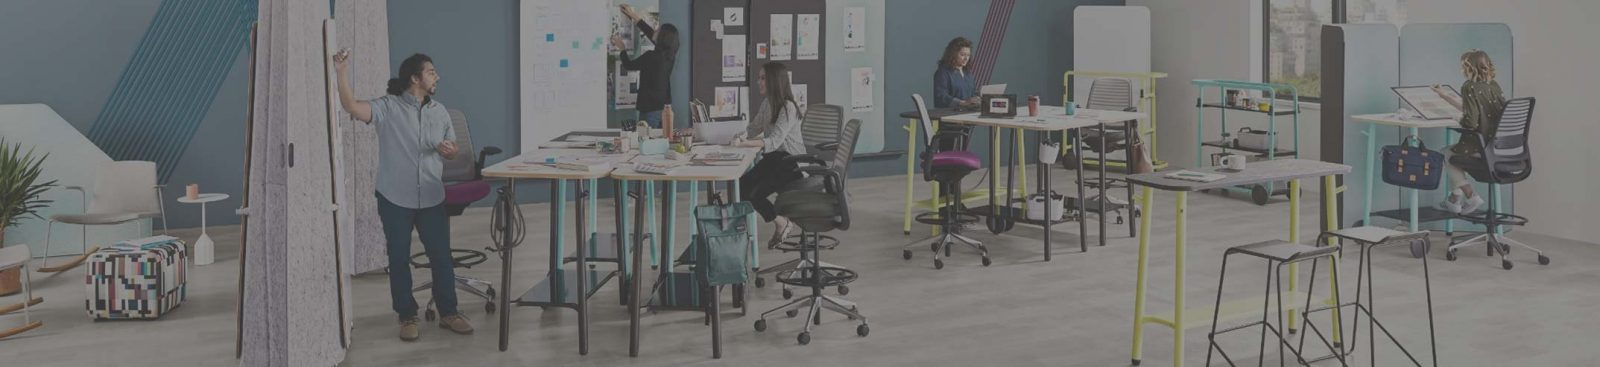 Our experts on: Office interior design trends for 2020 image